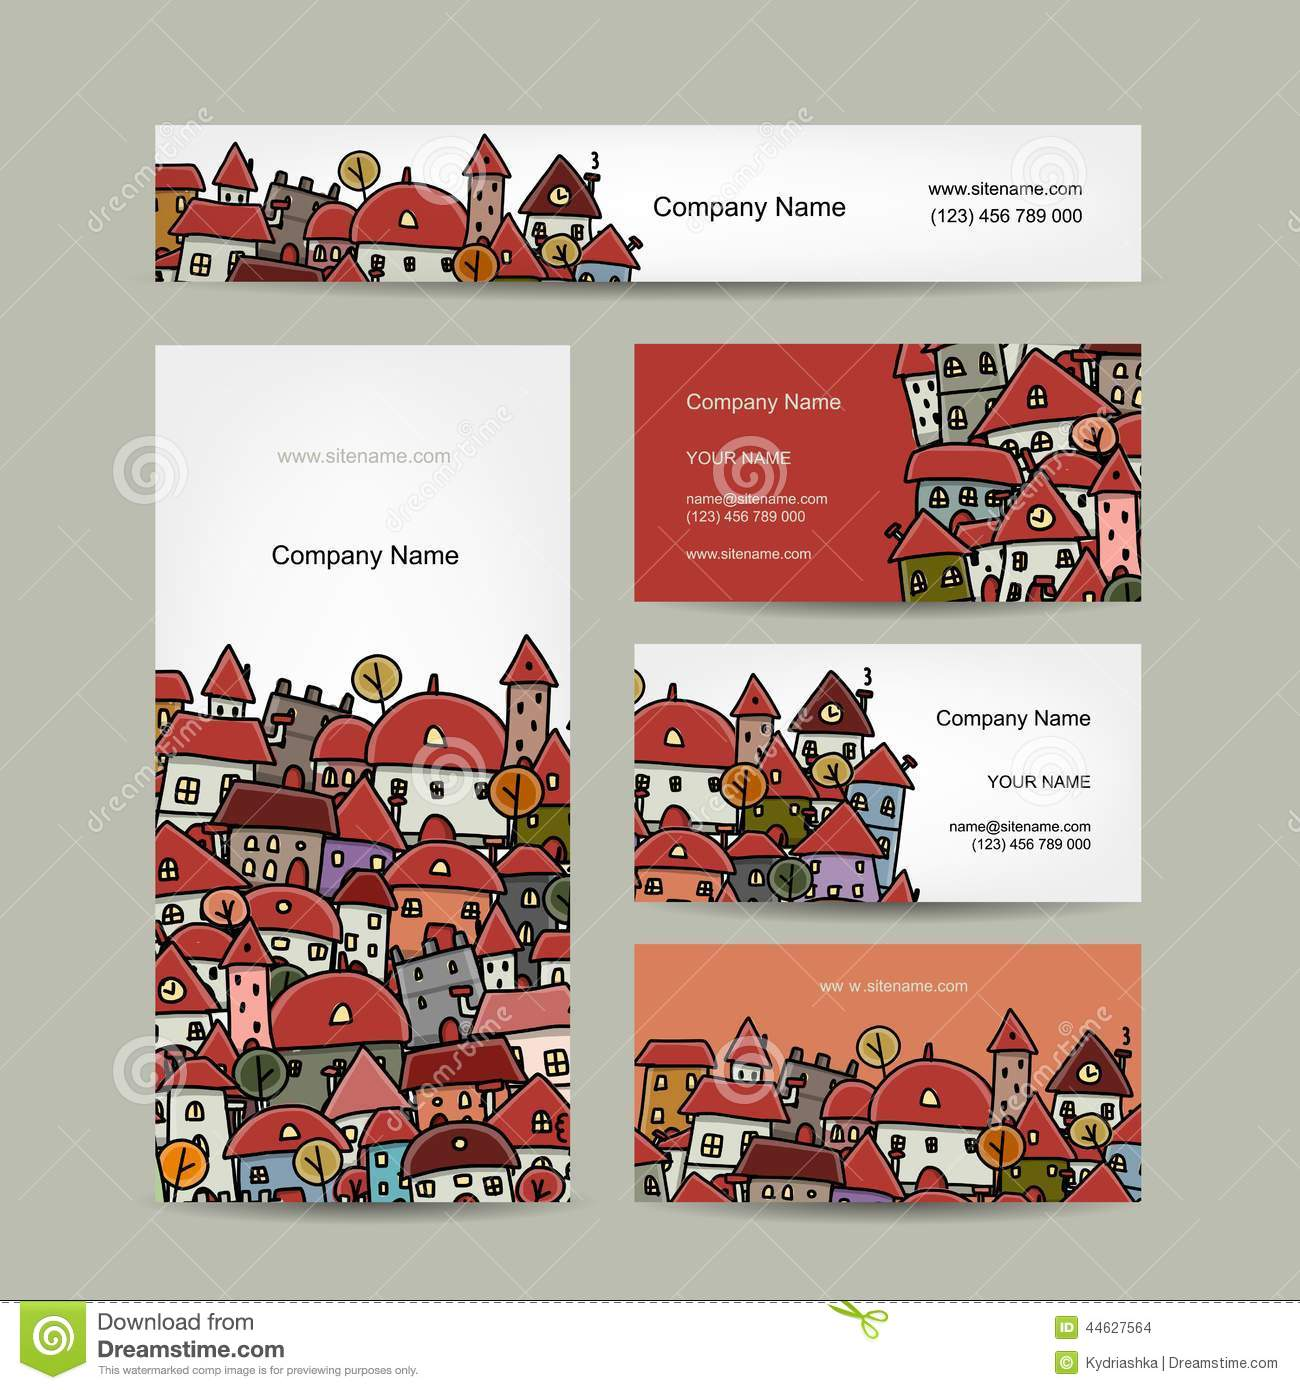 Business Cards Design, Cityscape Sketch Stock Vector - Illustration ...